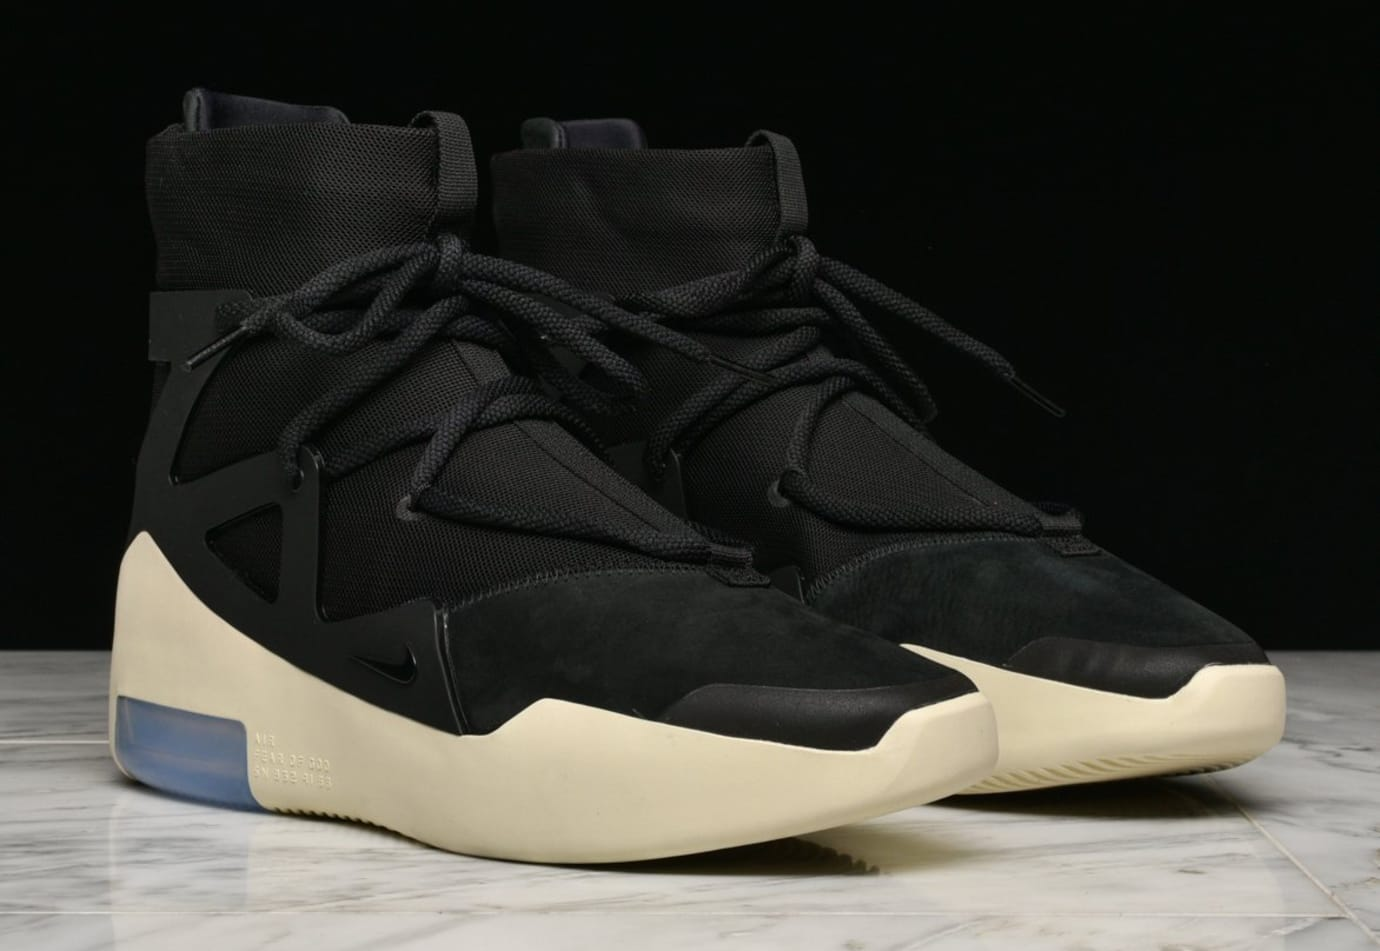 Nike Air Fear of God 1 'Black' (Pair)